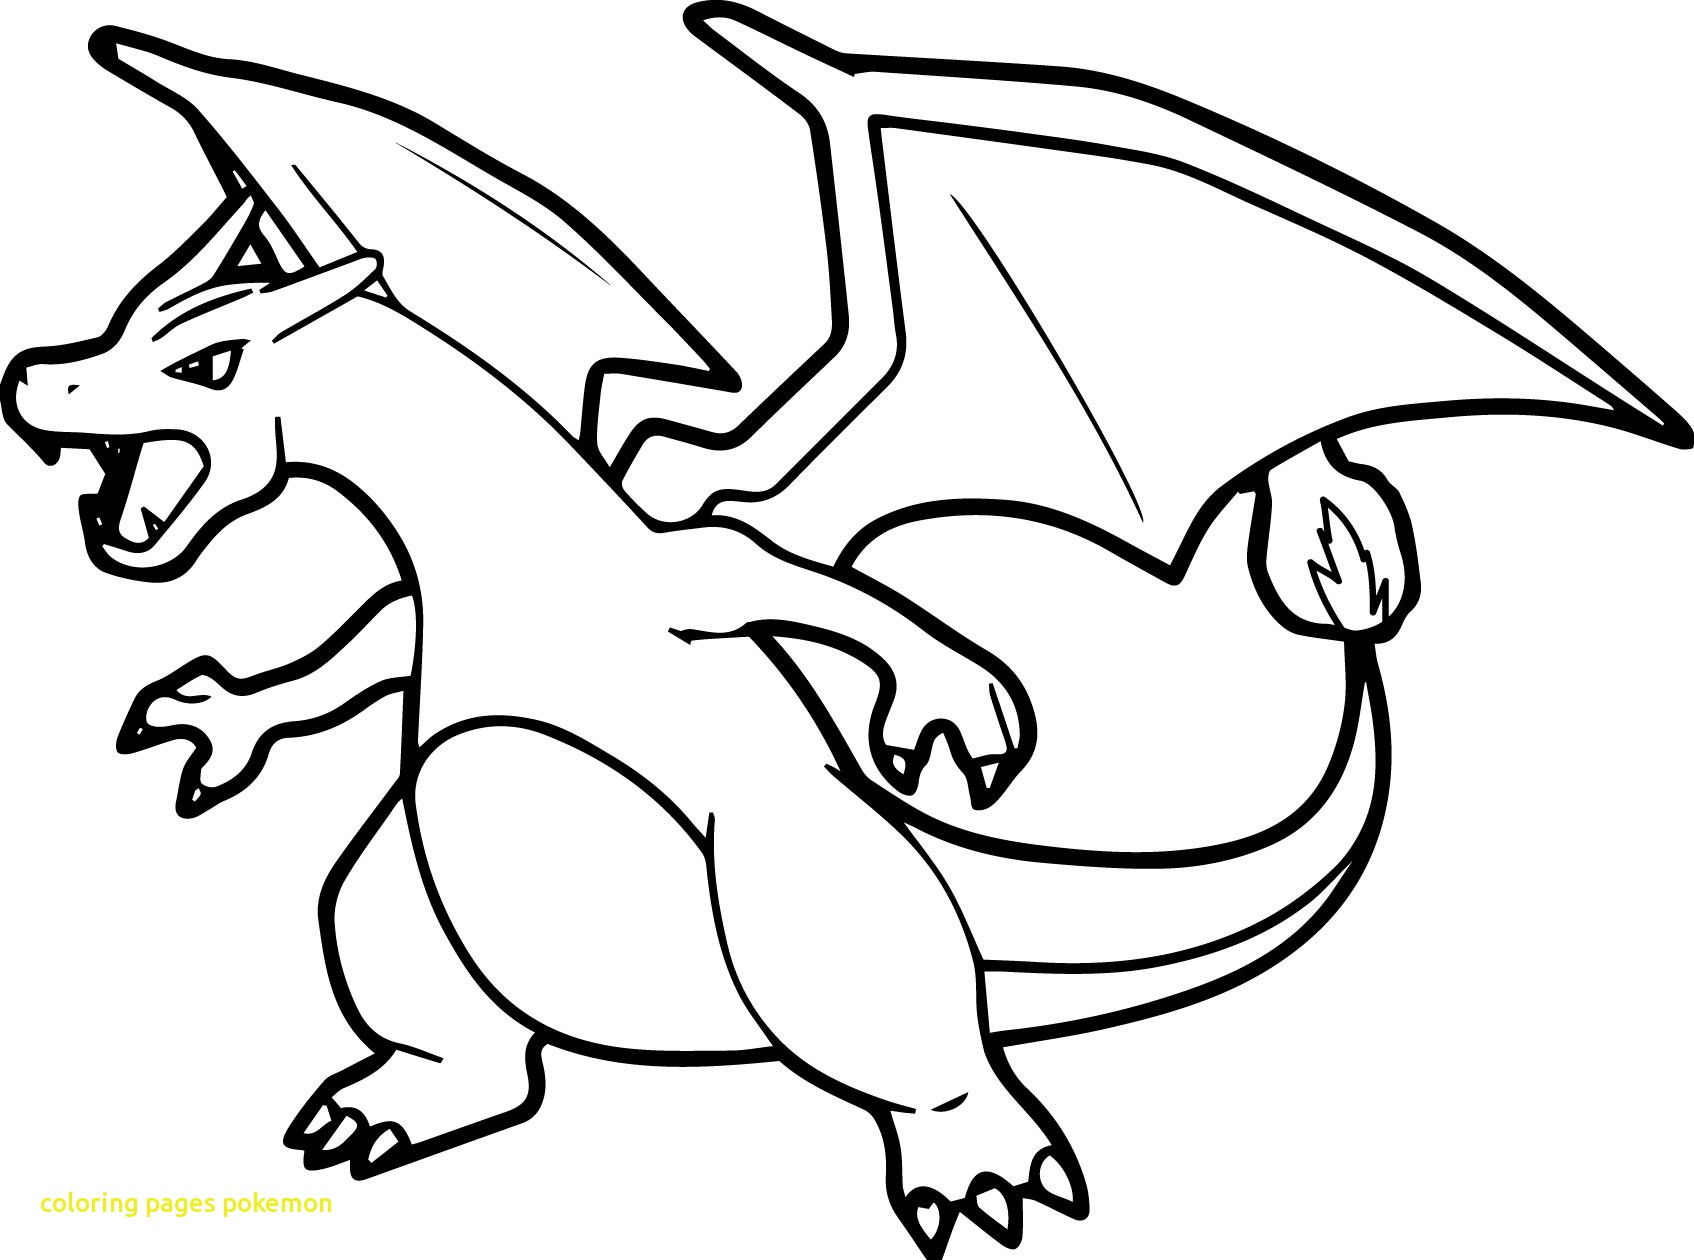 Pokemon Coloring Pages Charizard Printable 12p - Free For Children